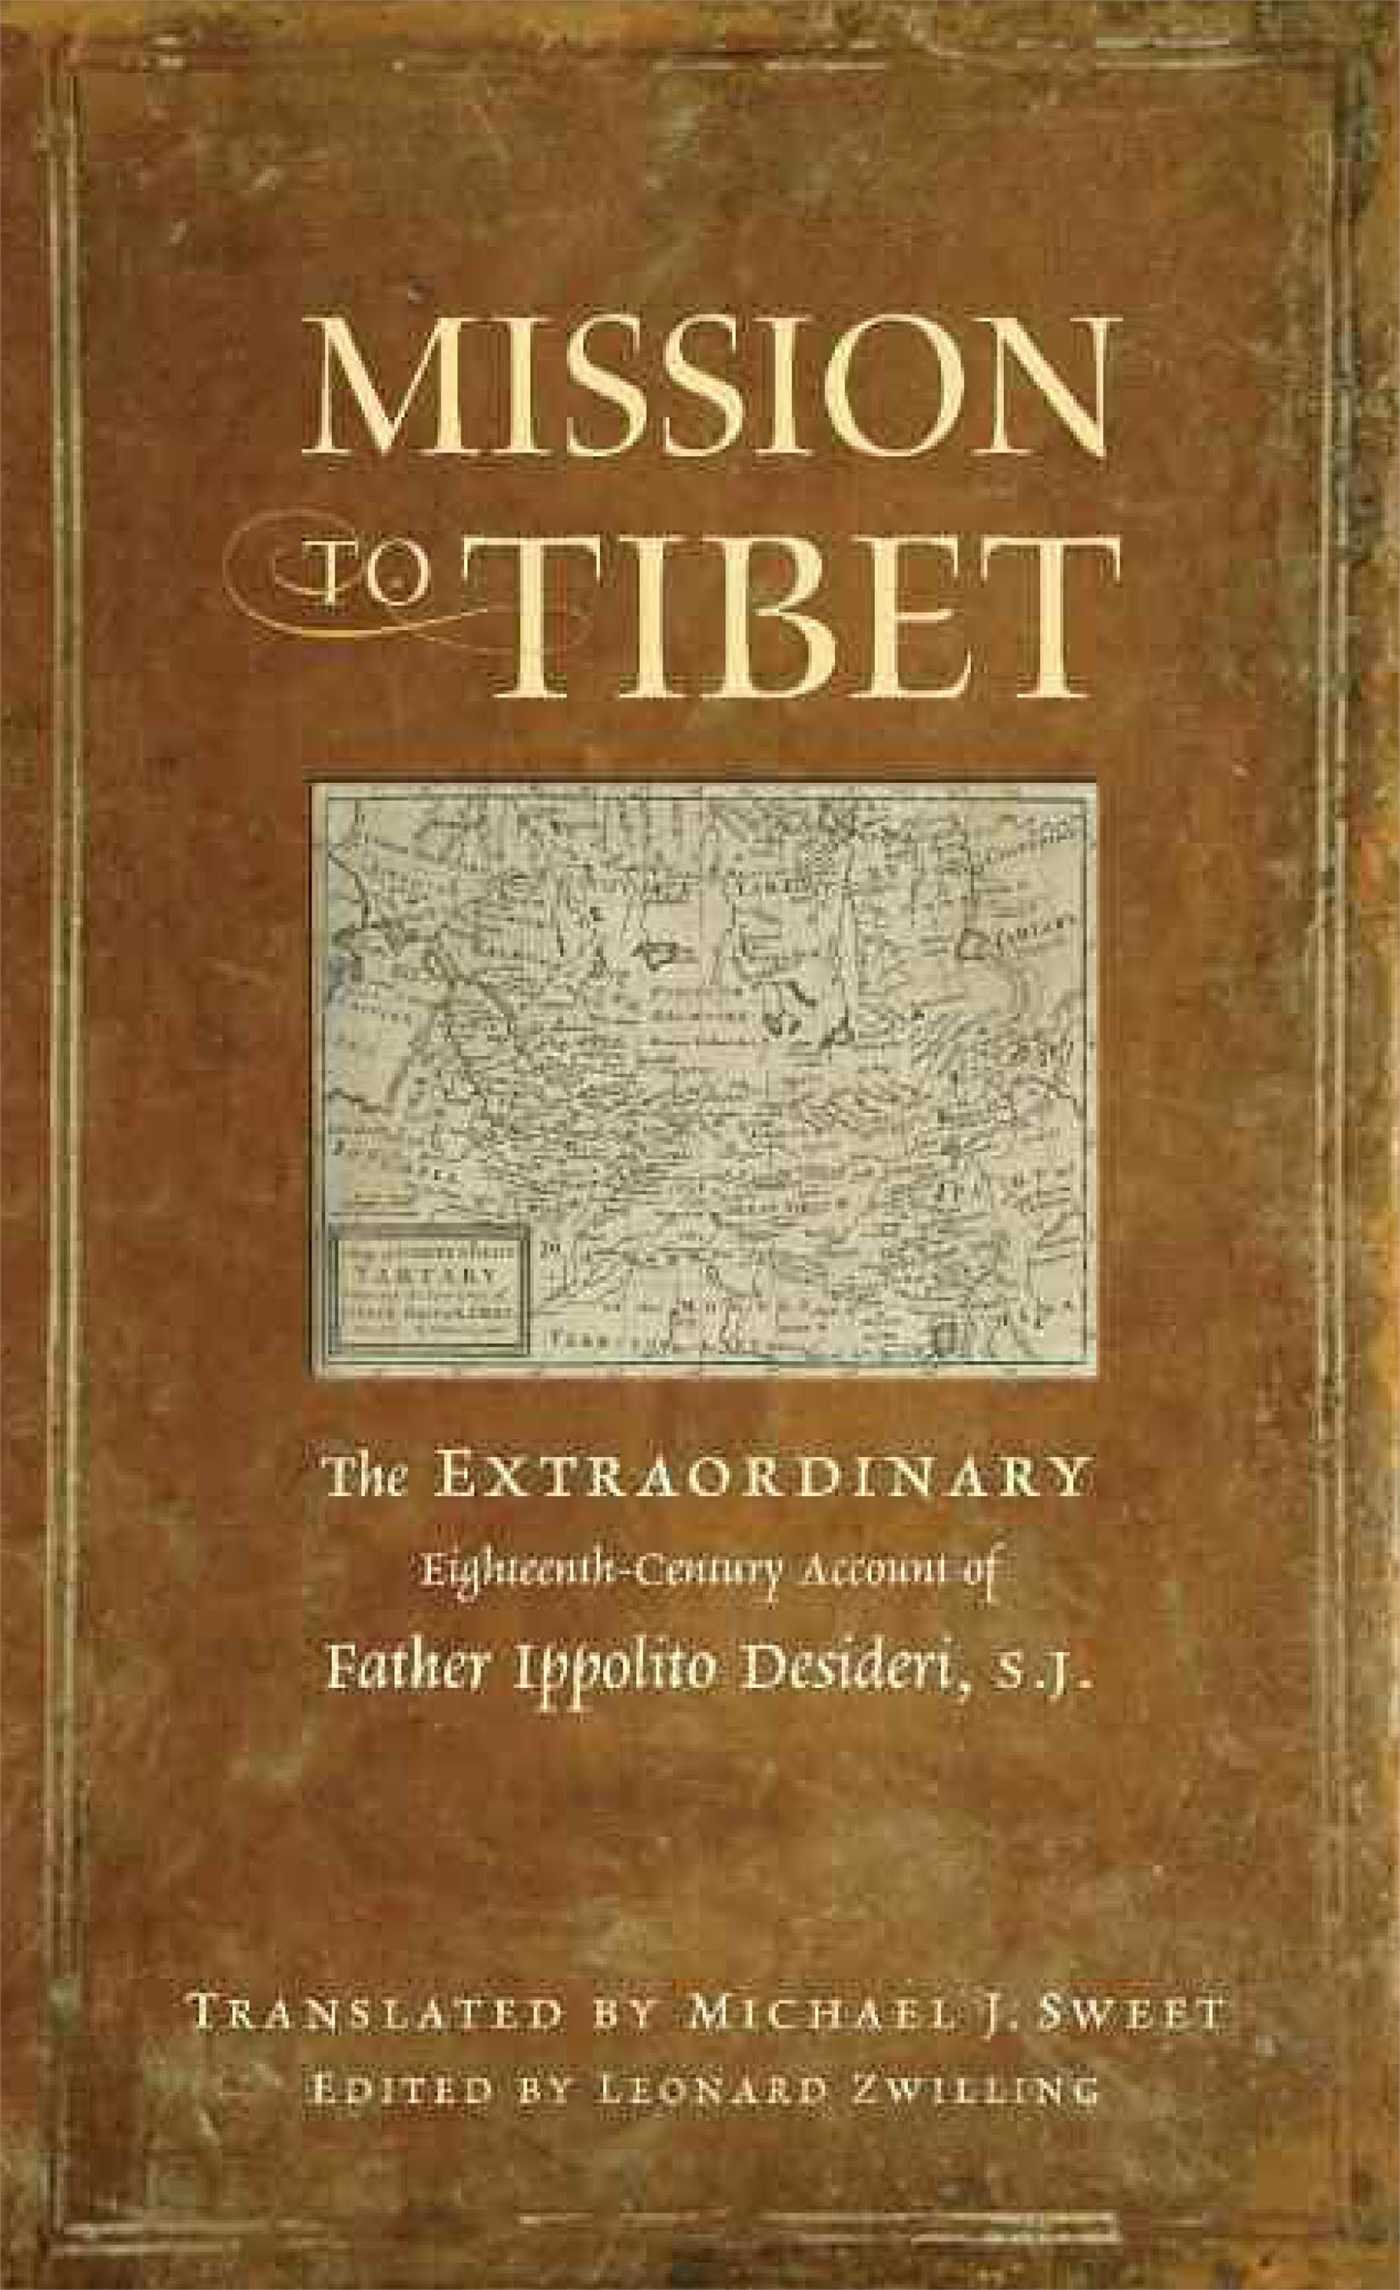 Mission to Tibet: The Extraordinary Eighteenth-Century Account of Father Ippolito  Desideri S. J. Paperback – November 1, 2010